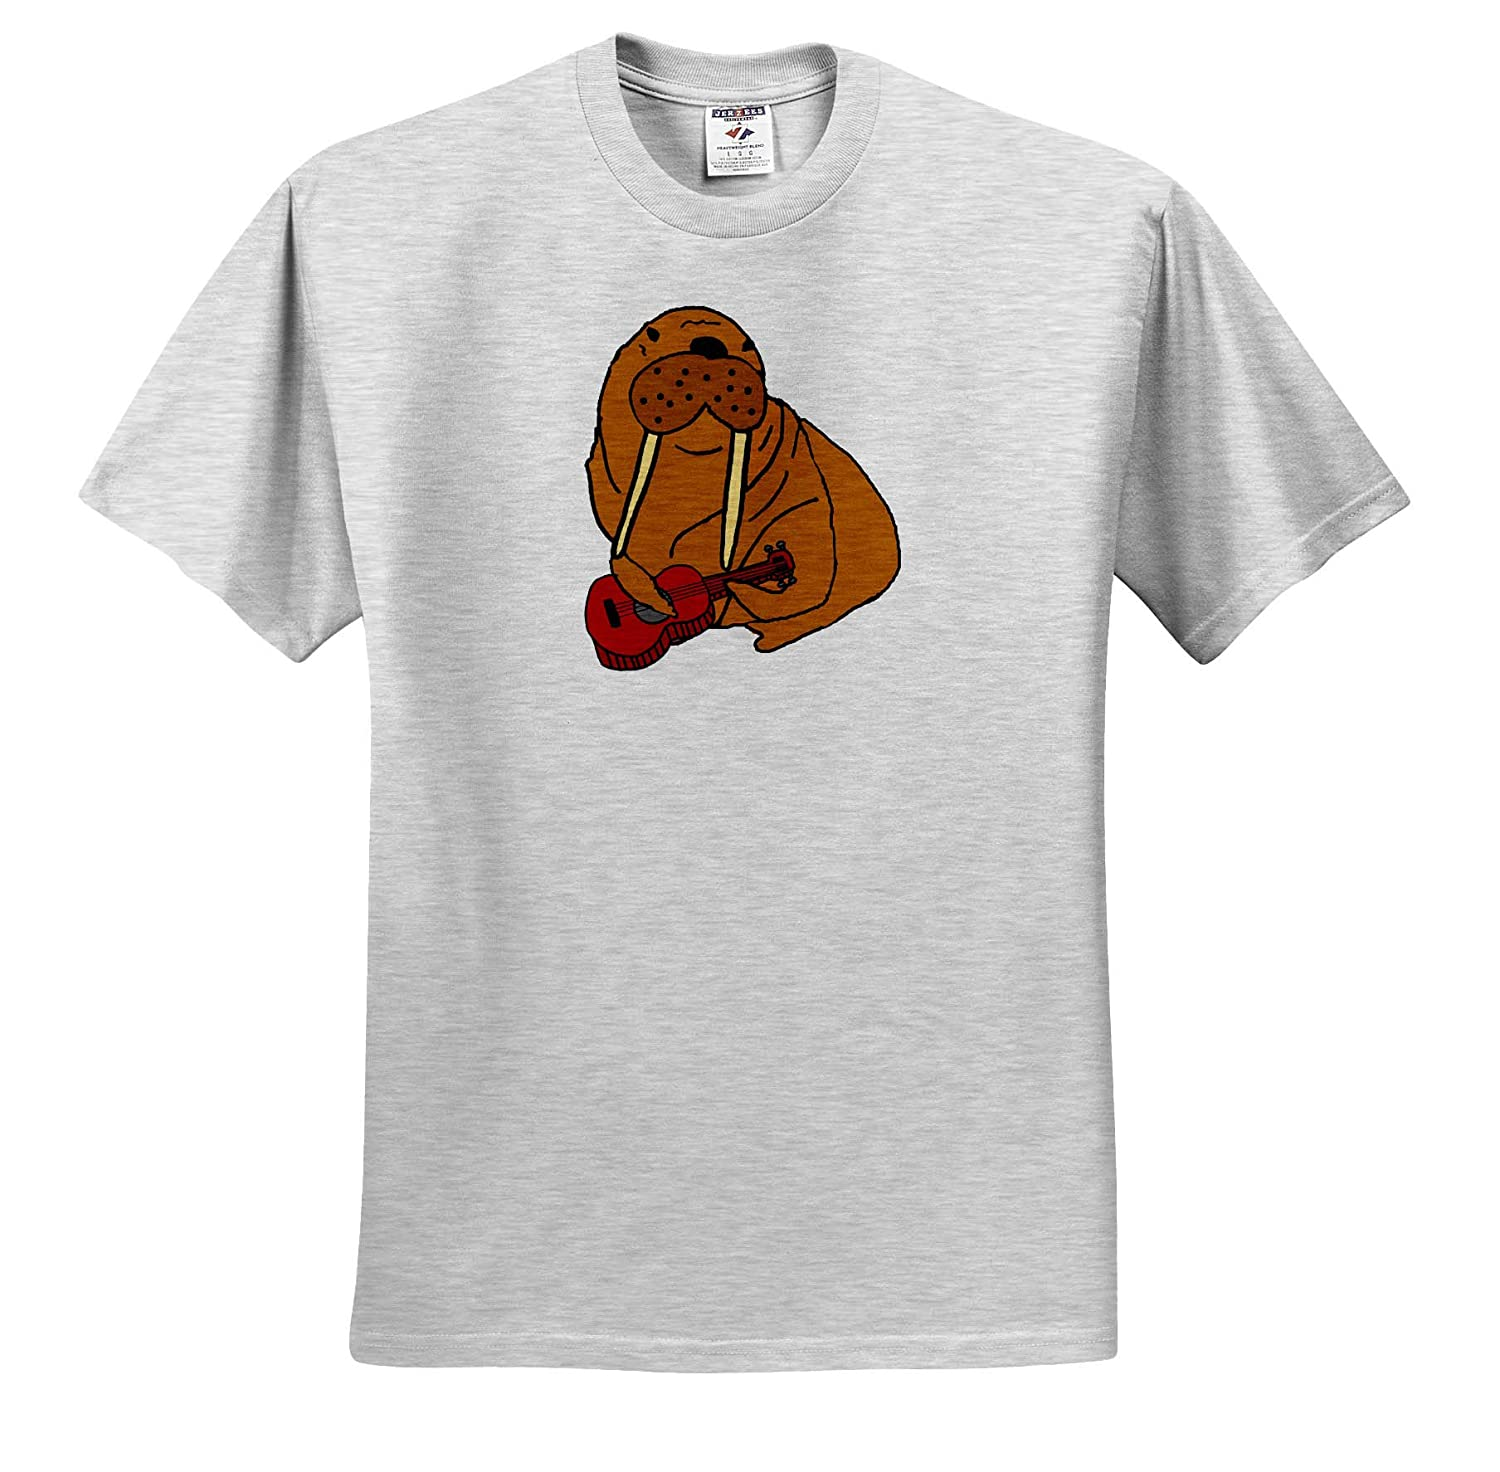 Funny Cute Walrus Playing Ukulele Music Cartoon Music Adult T-Shirt XL 3dRose All Smiles Art ts/_315264